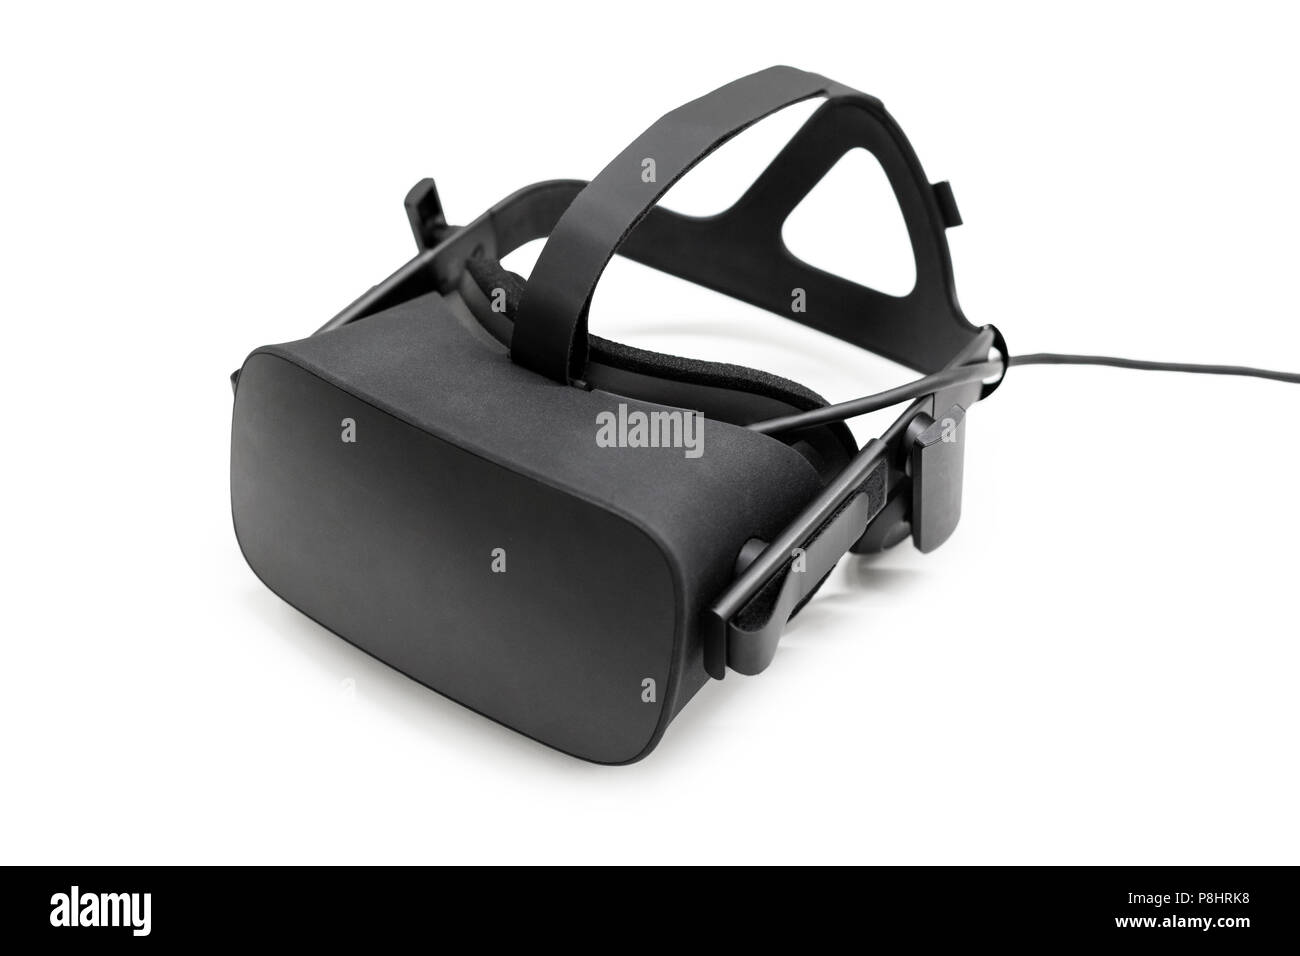 79f5a67d1e83 VR virtual reality headset half turned isolated on white background. Gaming  future device